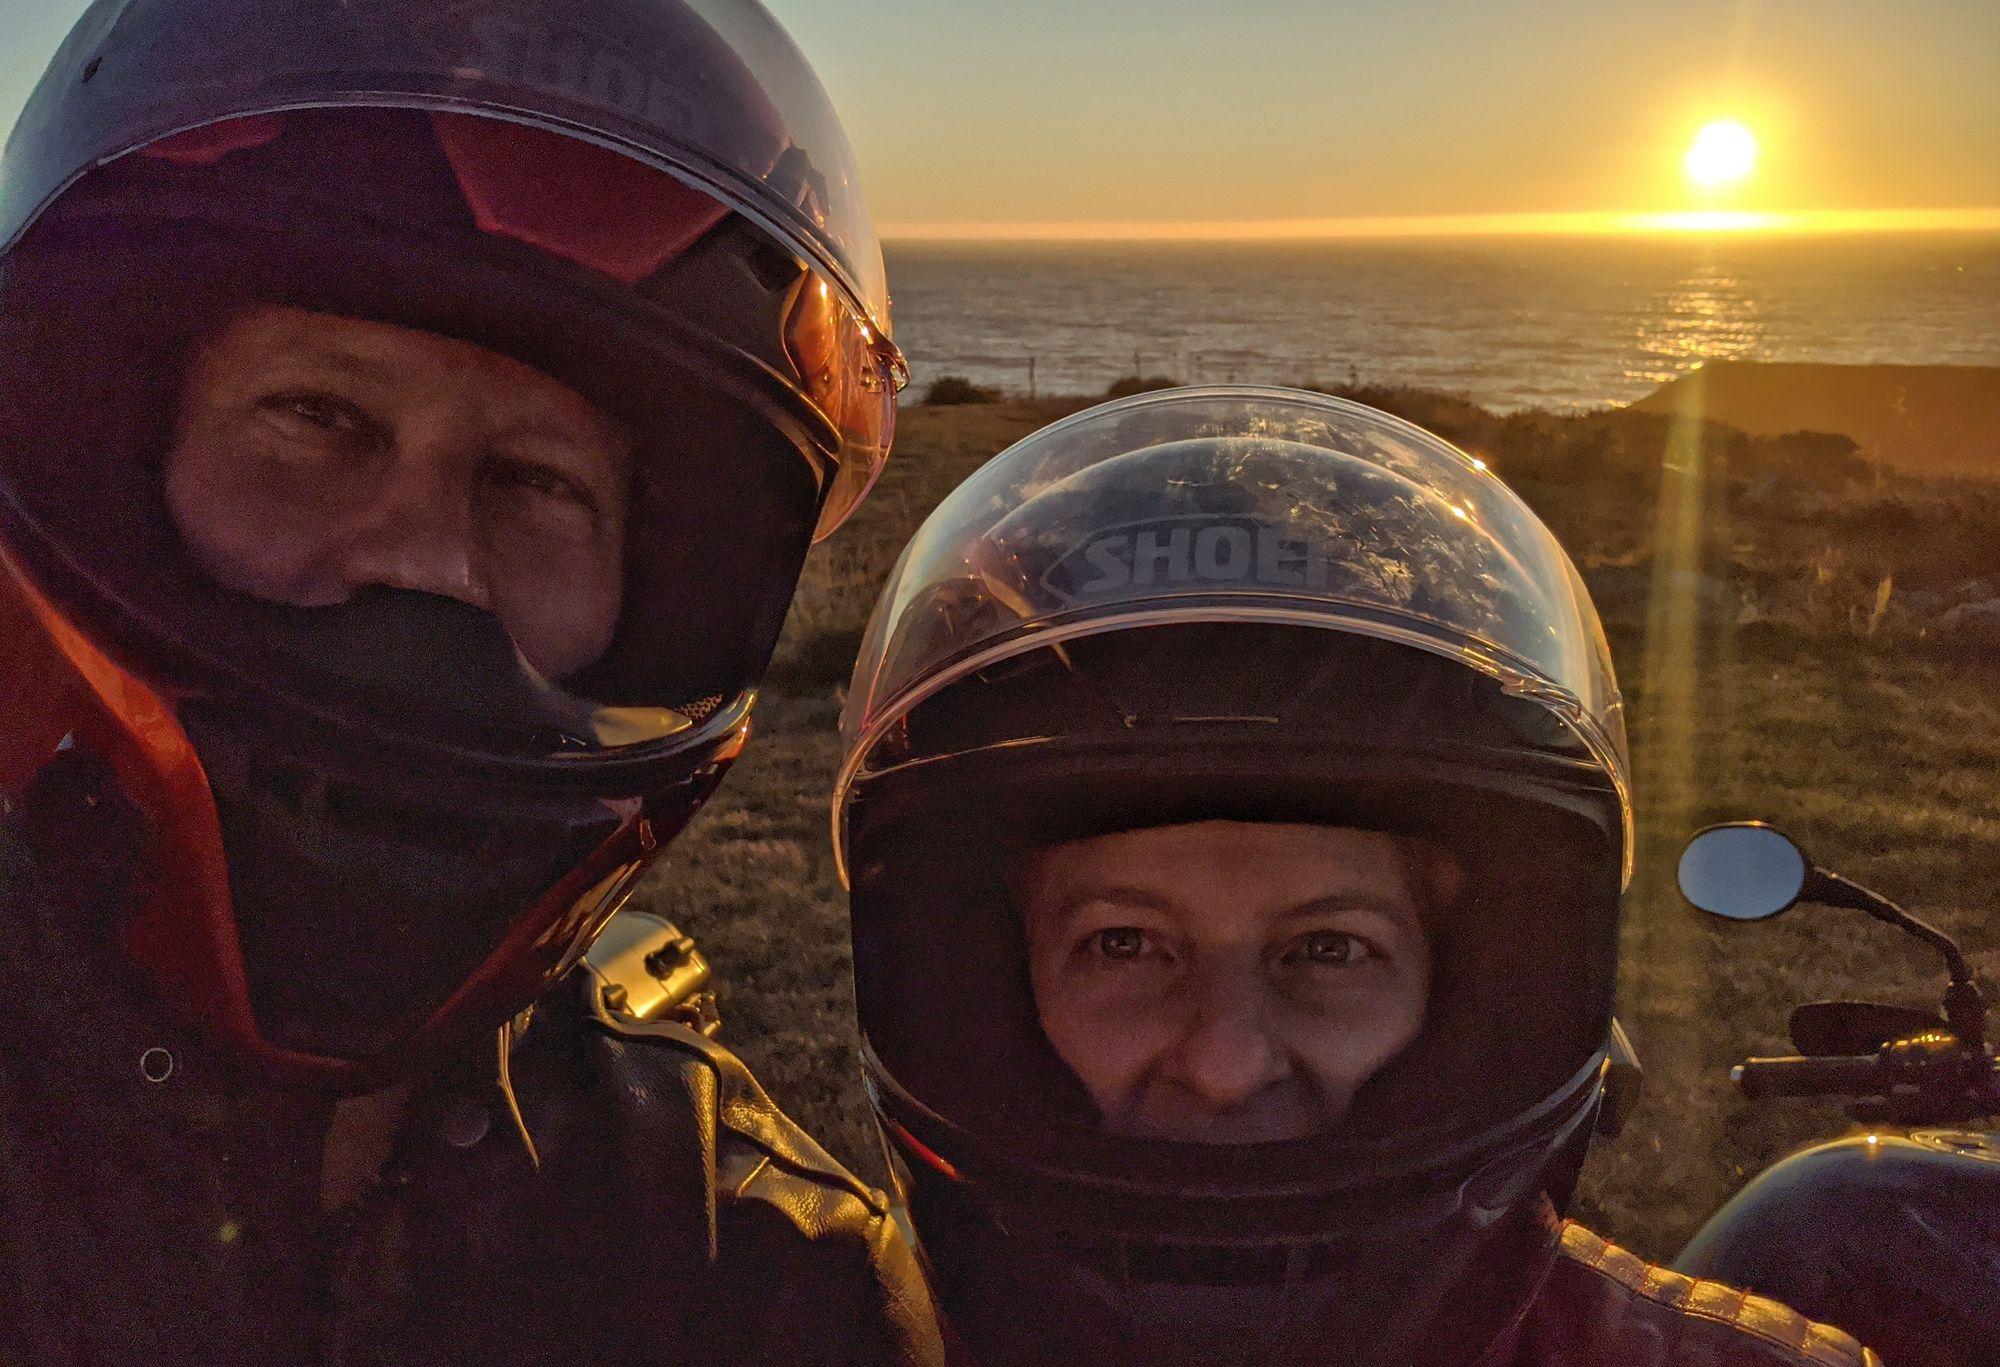 Seth and his wife wearing motorcycle helmets in front of a coastal sunset, northern California.